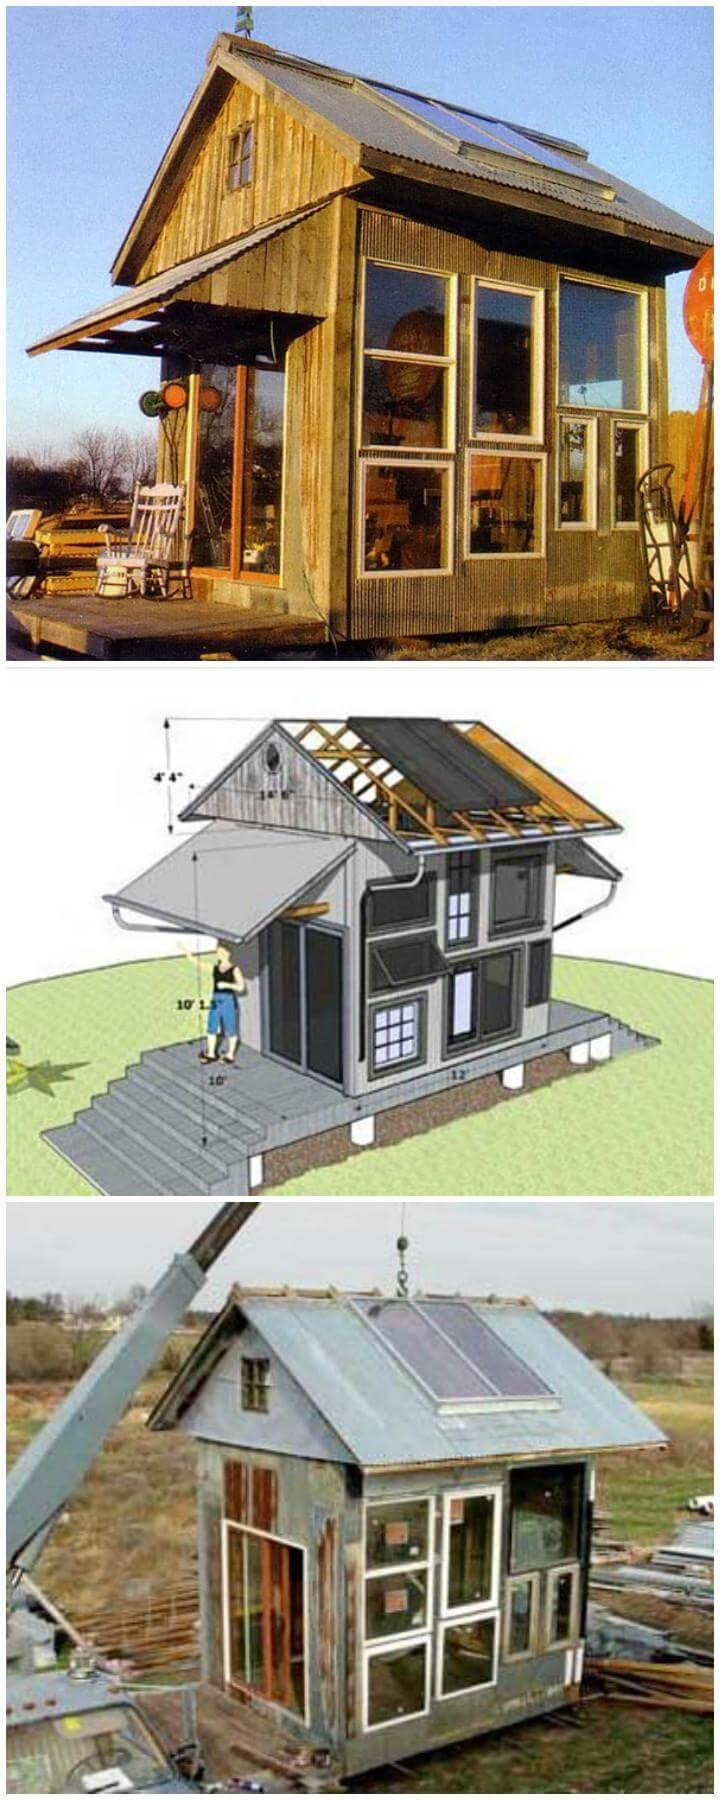 DIY Budget-Friendly Multipurpose, Solar-heated Greenhouse/Guest House